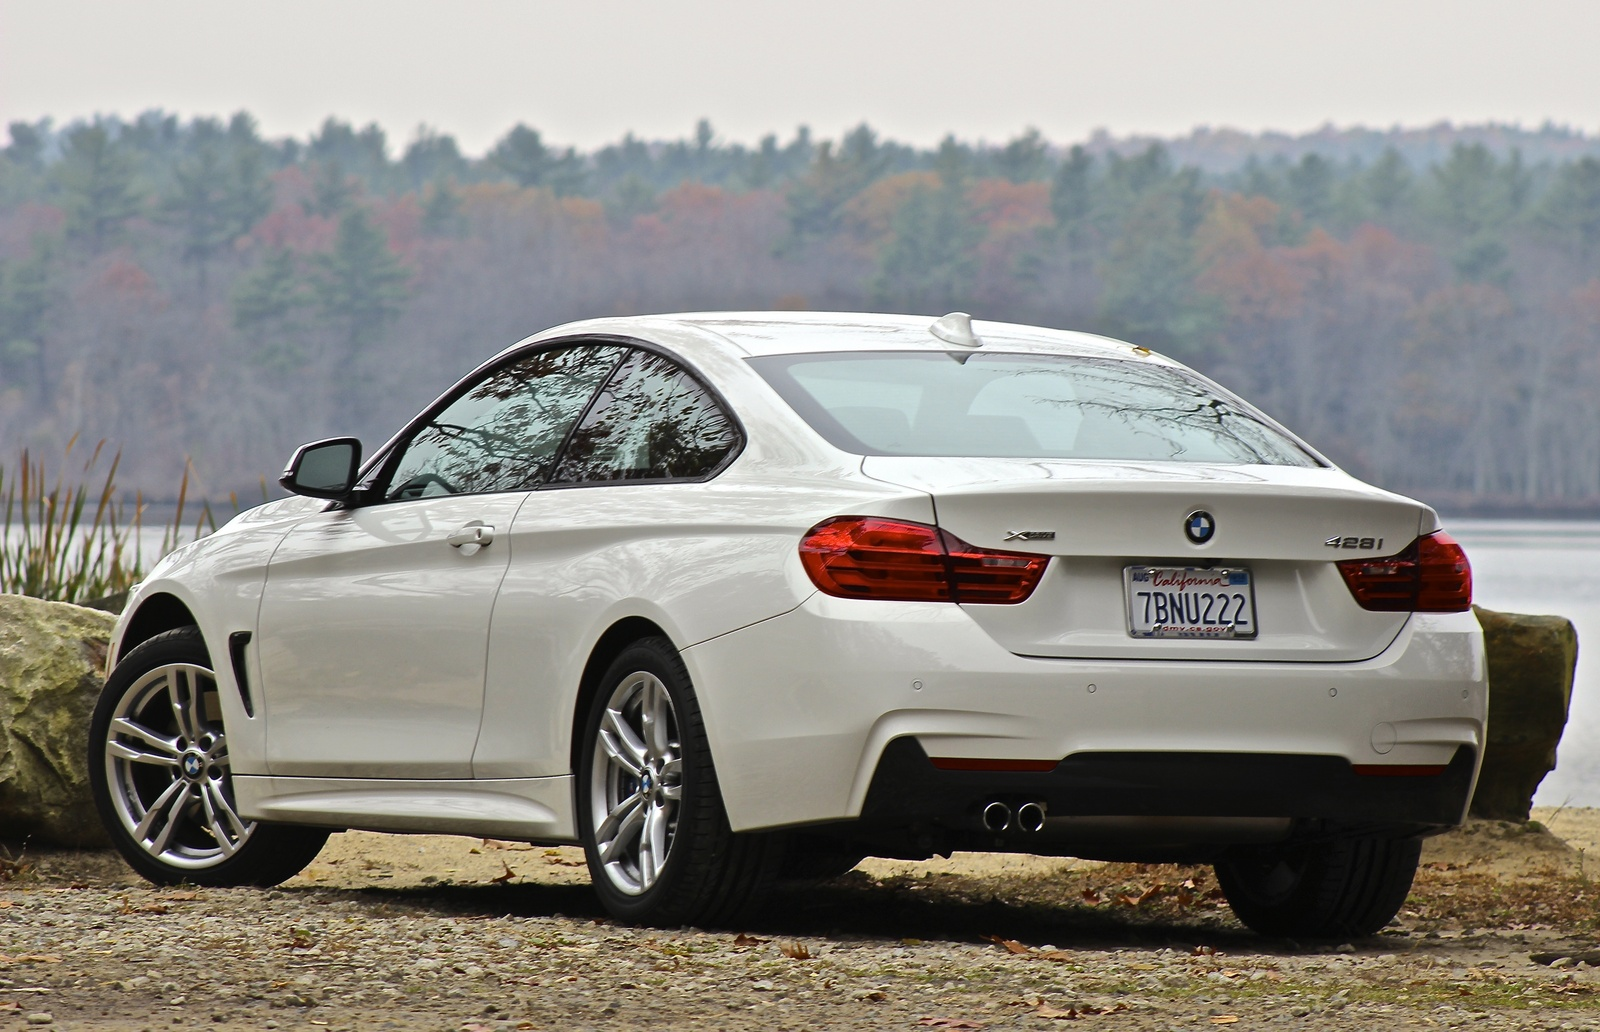 2014 BMW 4 Series, 2014 BMW 428i rear 3/4 shot, exterior, cost_effectiveness